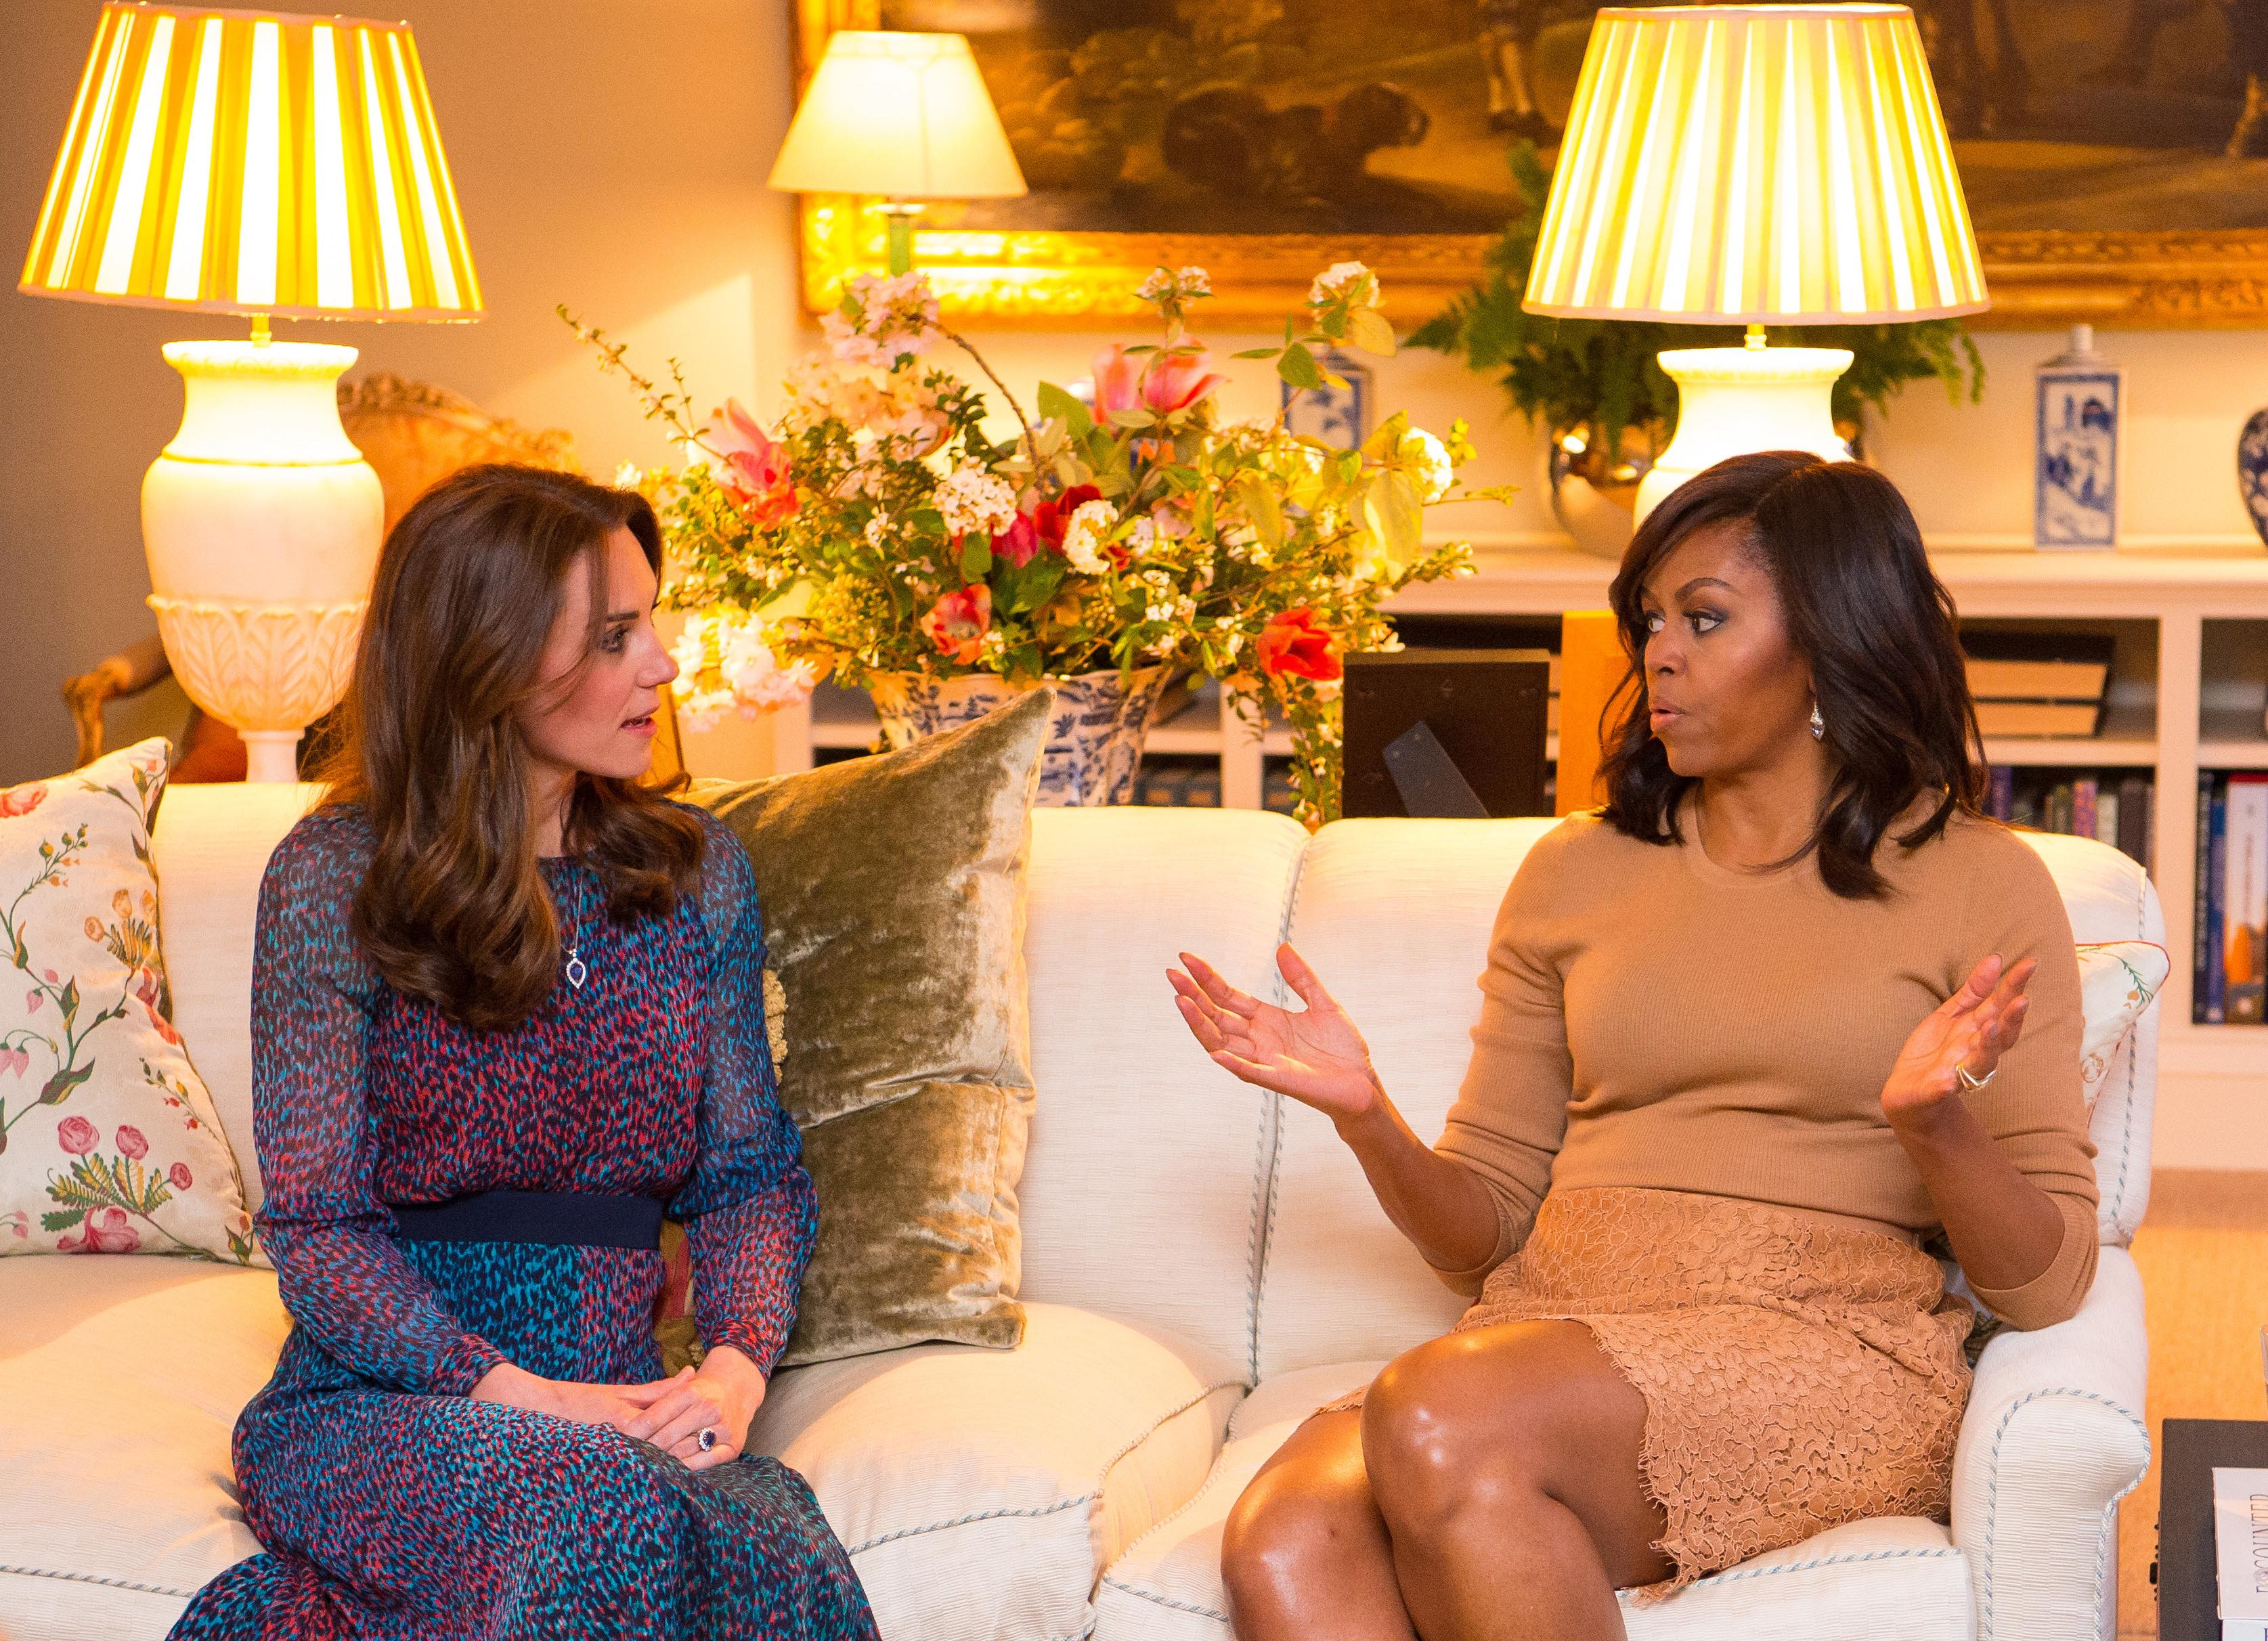 LONDON, ENGLAND - APRIL 22: Catherine, Duchess of Cambridge speaks with First Lady of the United States Michelle Obama in the Drawing Room of Apartment 1A Kensington Palace as they attend a dinner on April 22, 2016 in London, England. The President and his wife are currently on a brief visit to the UK where they attended lunch with HM Queen Elizabeth II at Windsor Castle and later will have dinner with Prince William and his wife Catherine, Duchess of Cambridge at Kensington Palace. Mr Obama visited 10 Downing Street this afternoon and held a joint press conference with British Prime Minister David Cameron where he stated his case for the UK to remain inside the European Union. (Photo by Dominic Lipinski - WPA Pool/Getty Images)